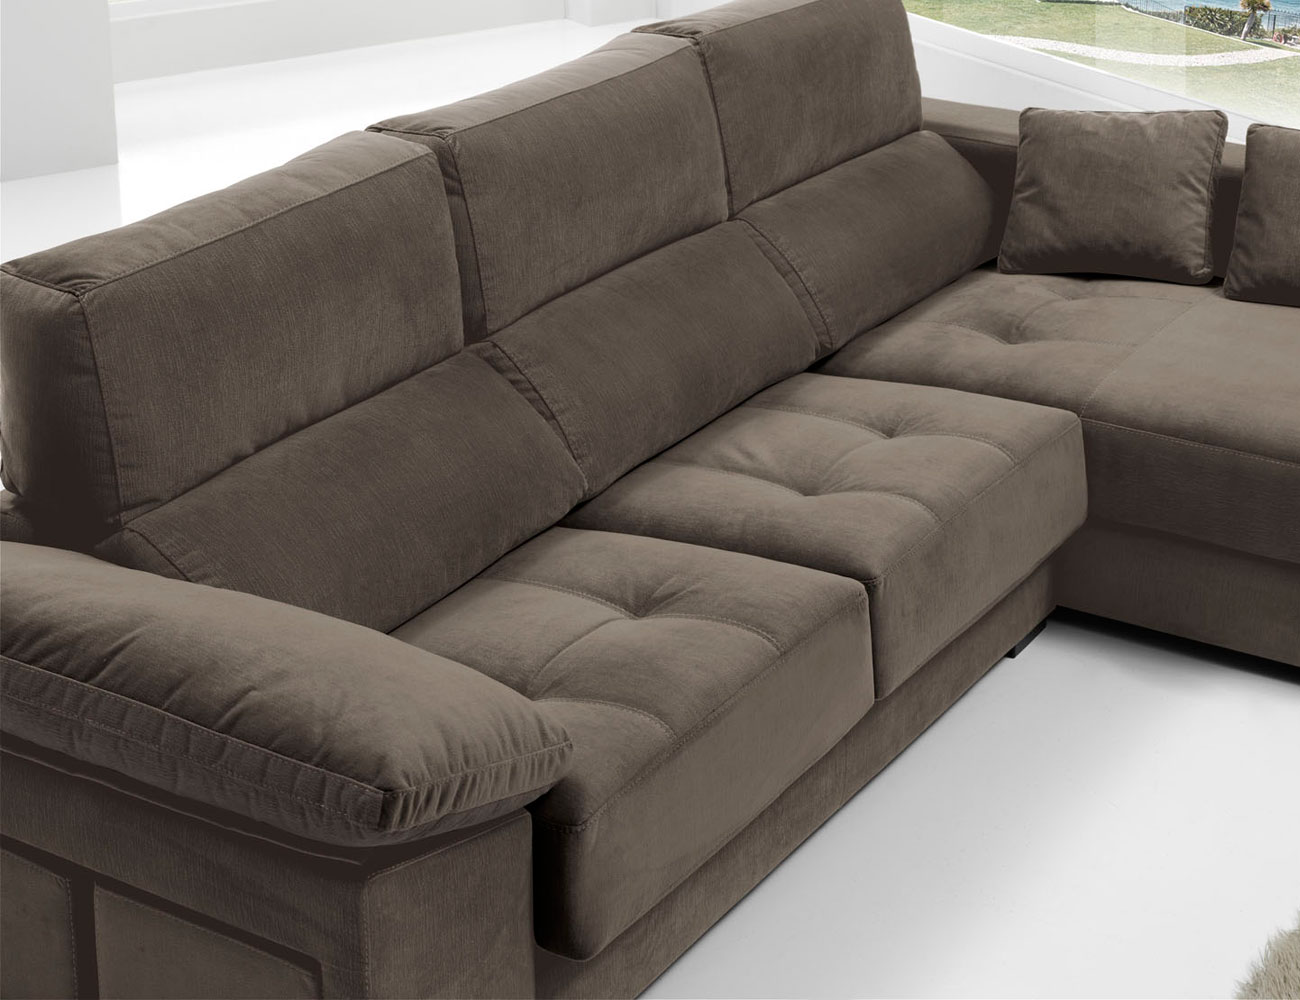 Sofa chaiselongue anti manchas bering pouf 260